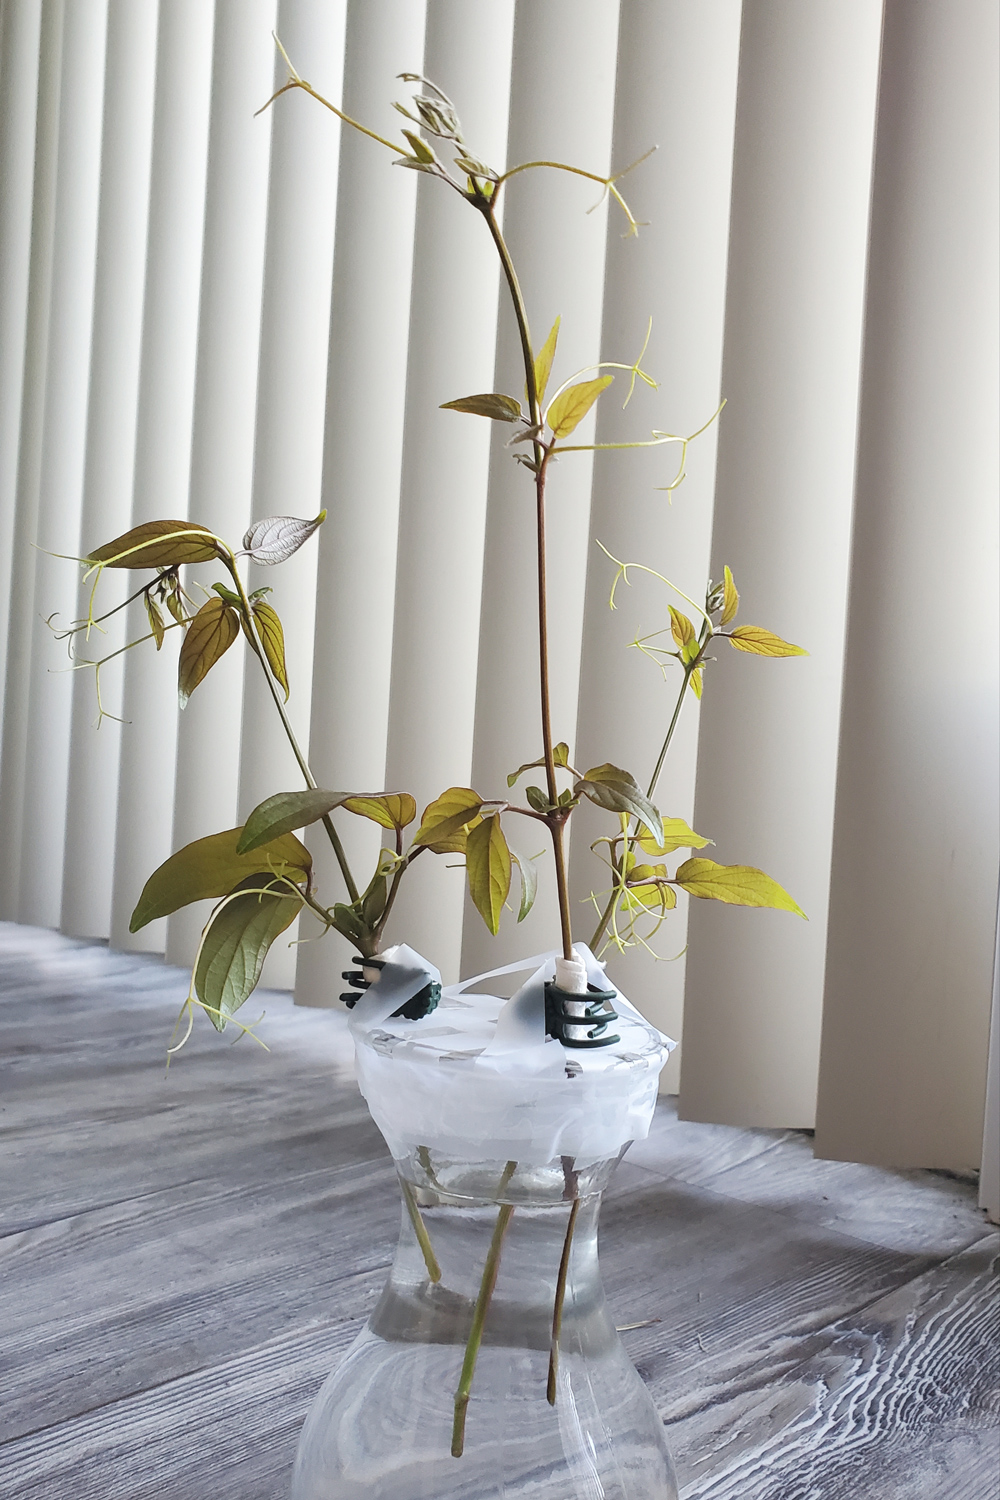 Three grape vine cuttings sit suspended in water